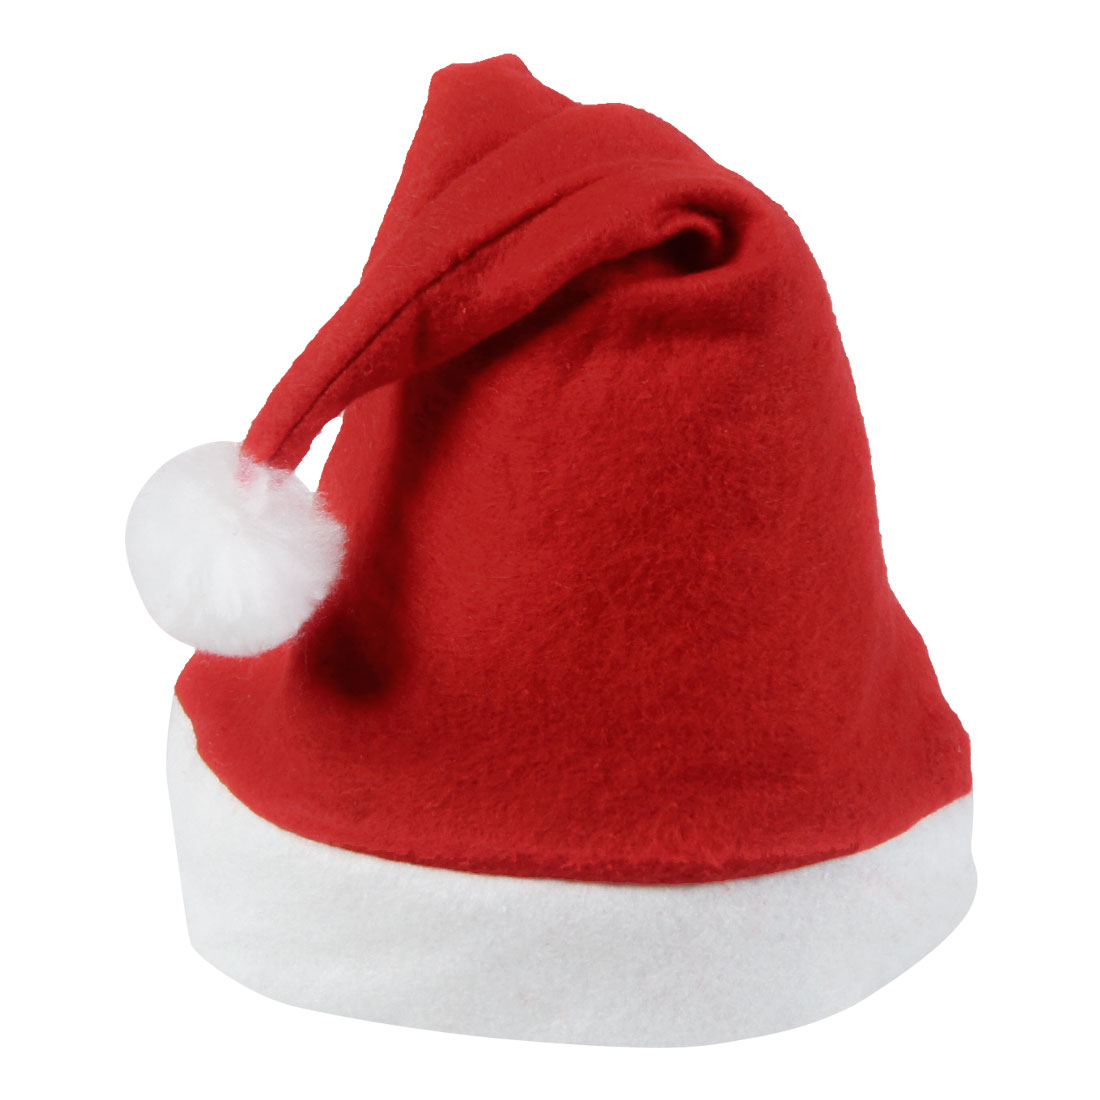 White Trim True Red Christmas Santa Hat Xmas Gift for Adults